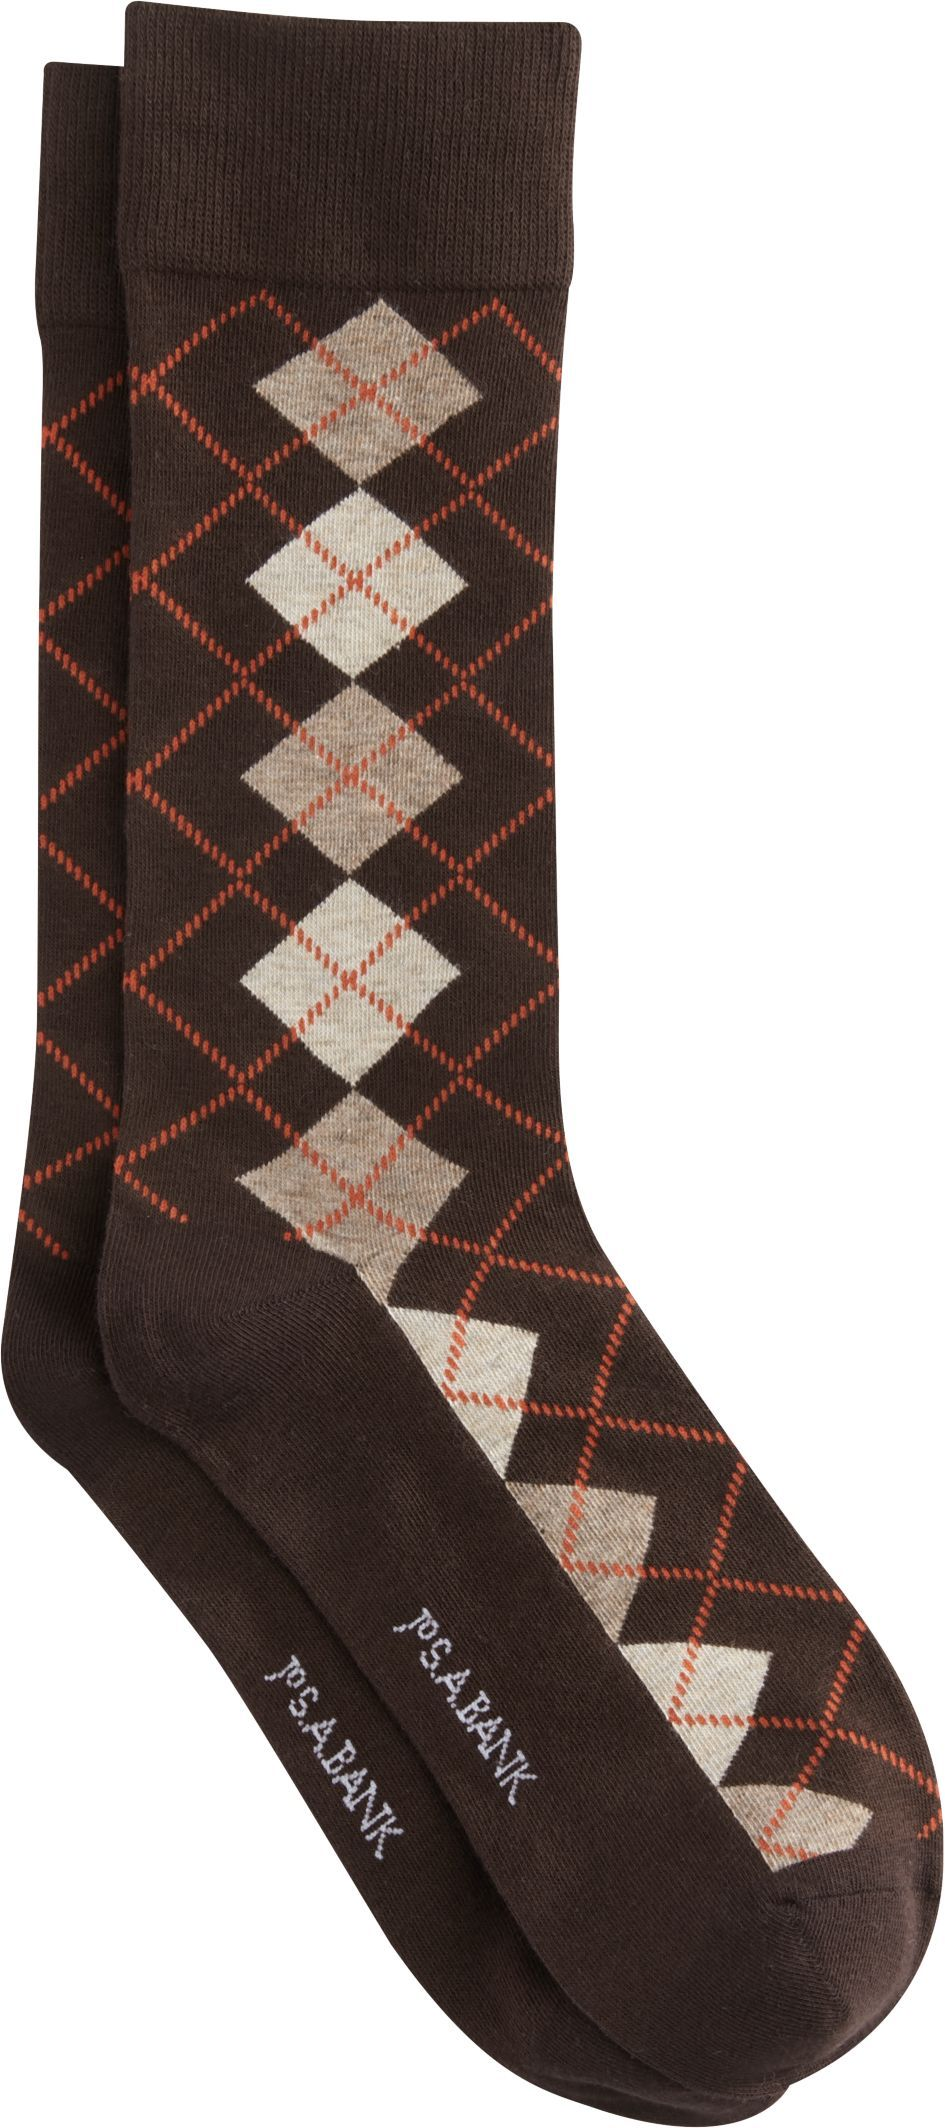 17f2b3cf9014 Jos. A. Bank Argyle Pattern Socks, 1-Pair   Products   Patterned ...